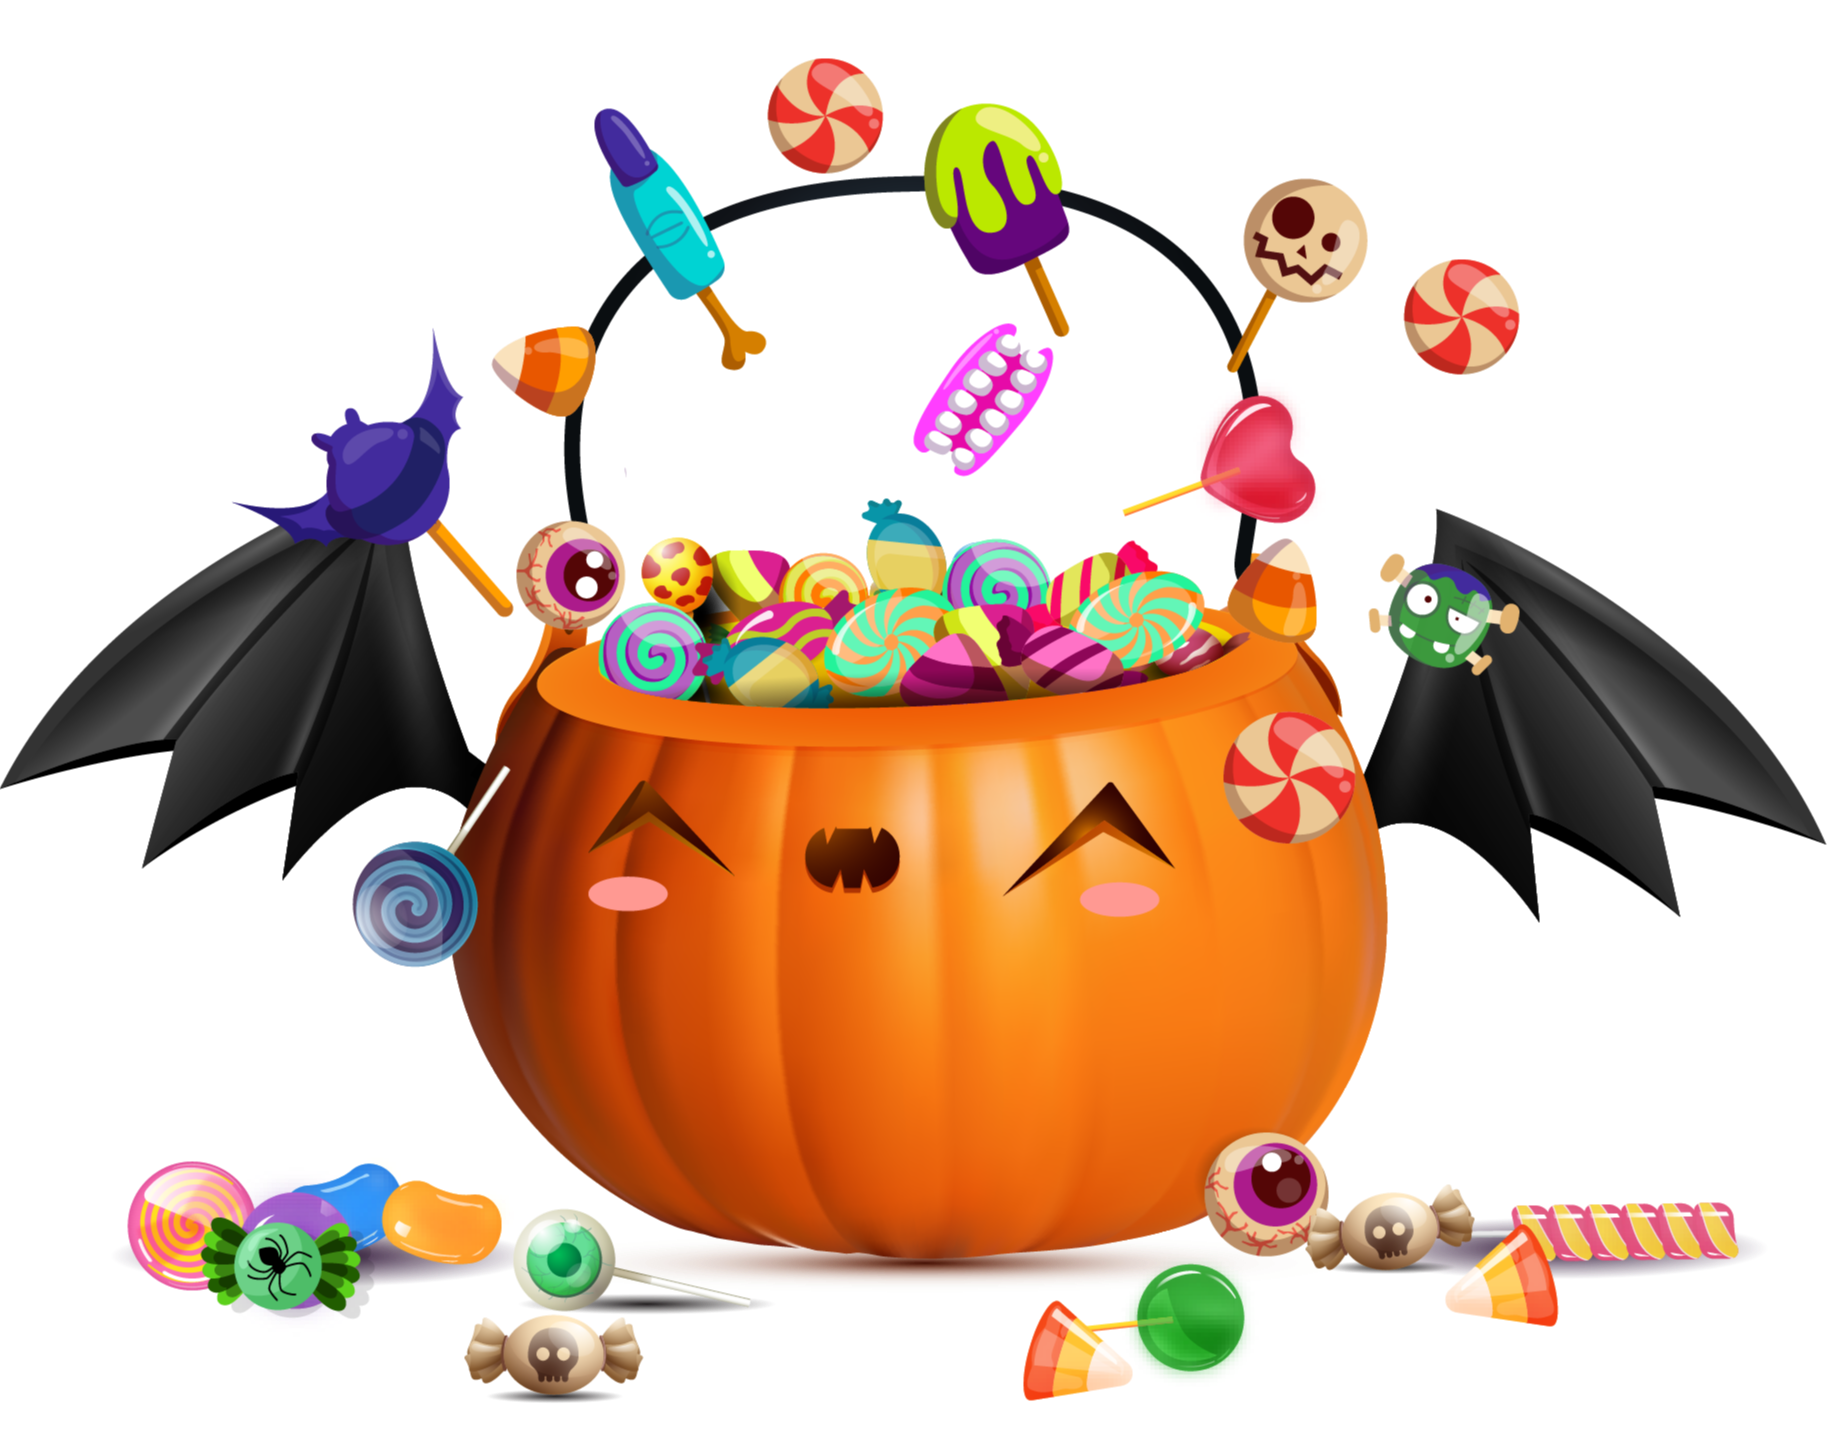 Illustration of a pumpkin Jack-O'-lantern overflowing with candy